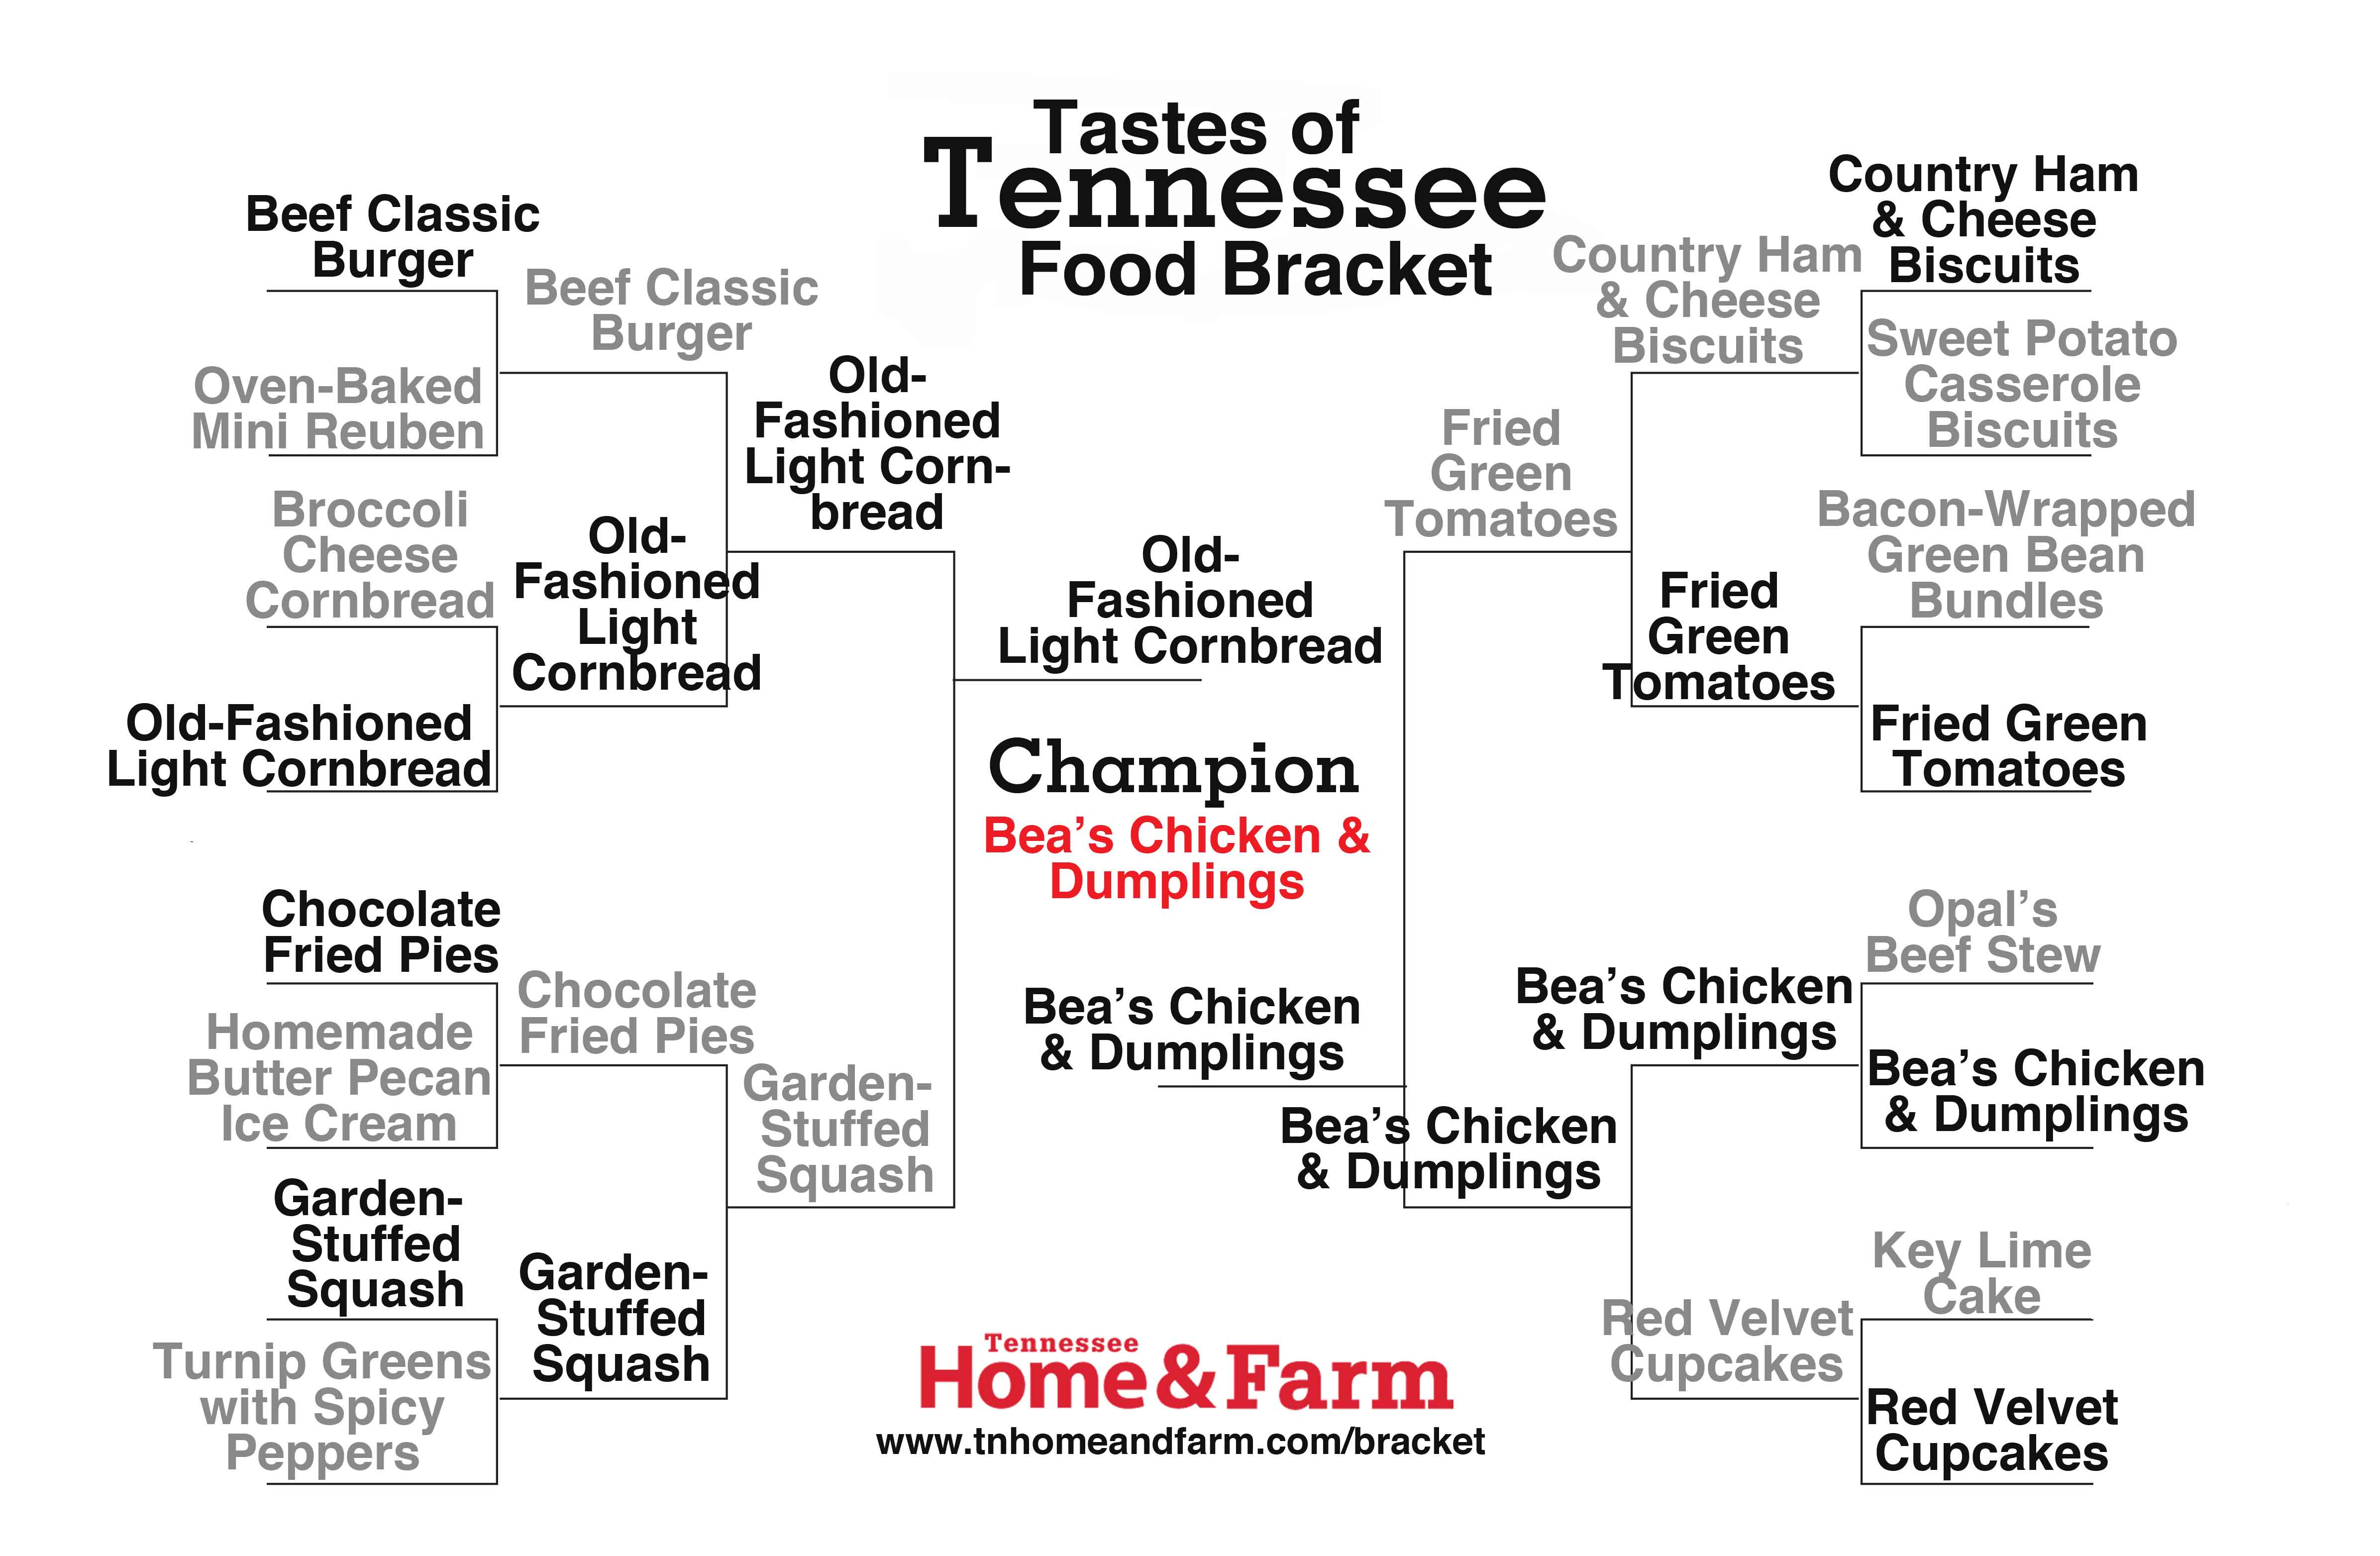 Bea's Chicken and Dumplings Recipe wins the Tastes of Tennessee Food Bracket Contest